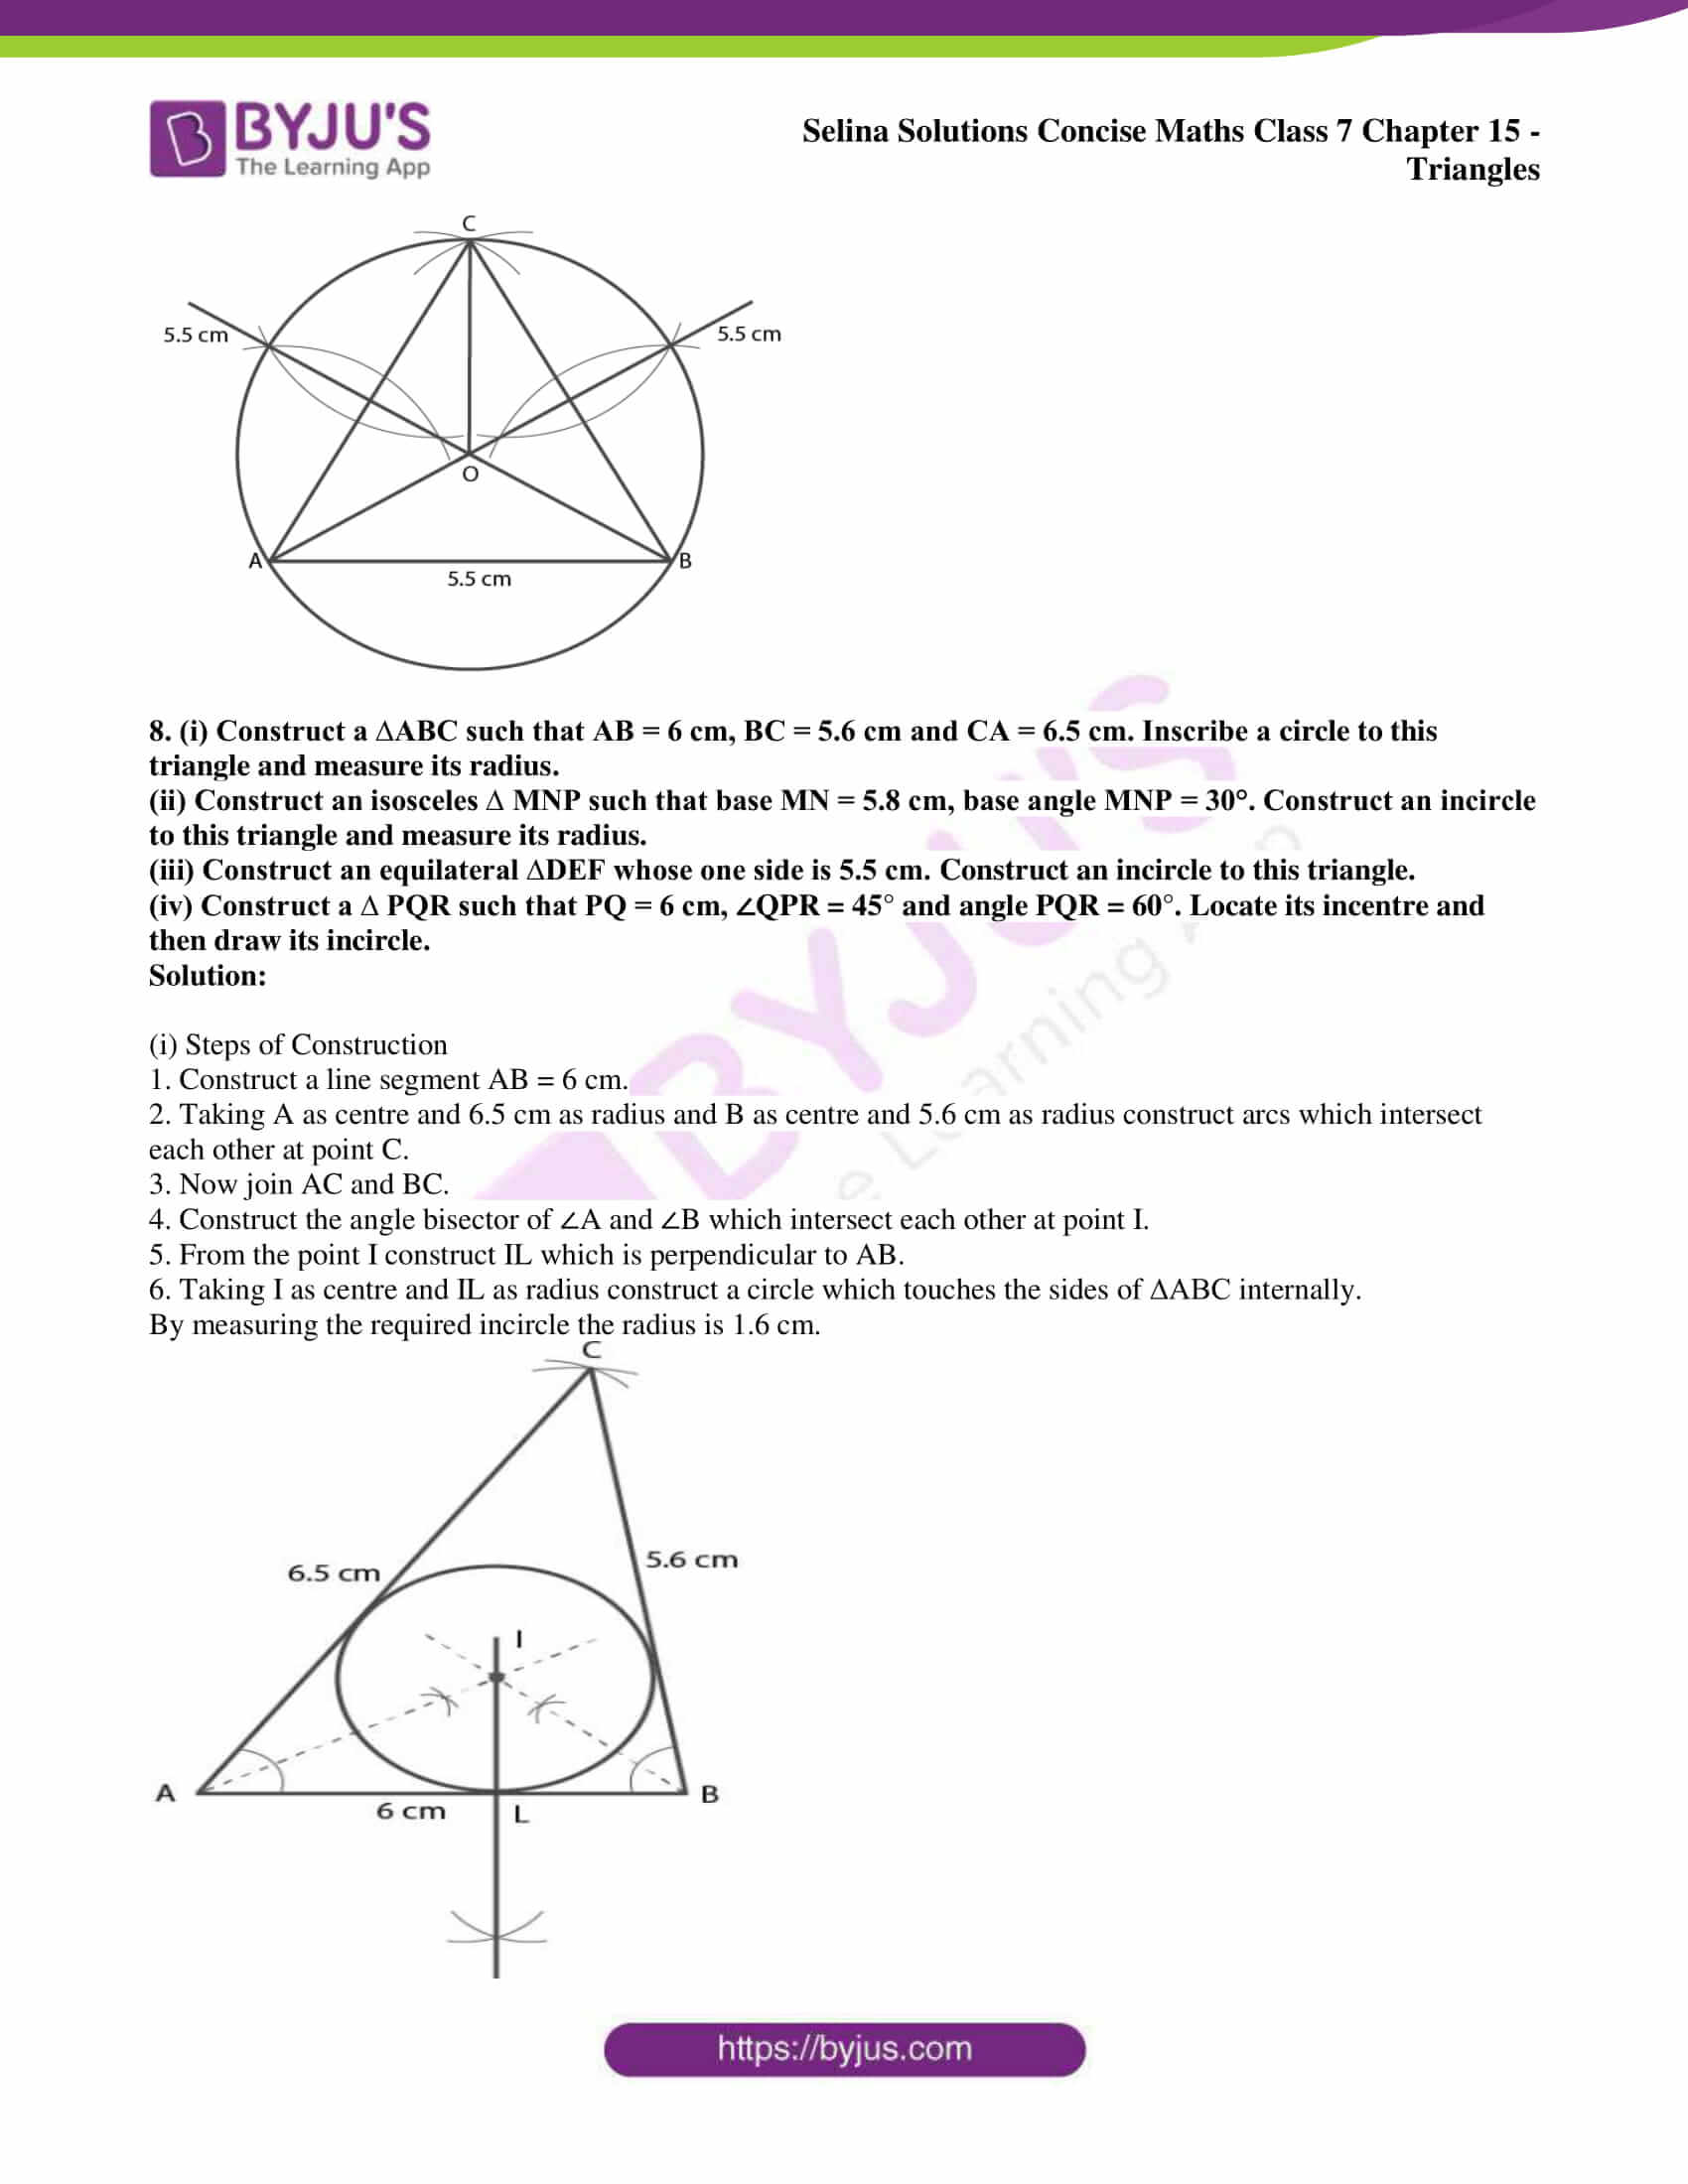 selina sol concise maths class 7 chapter 15 ex c 10